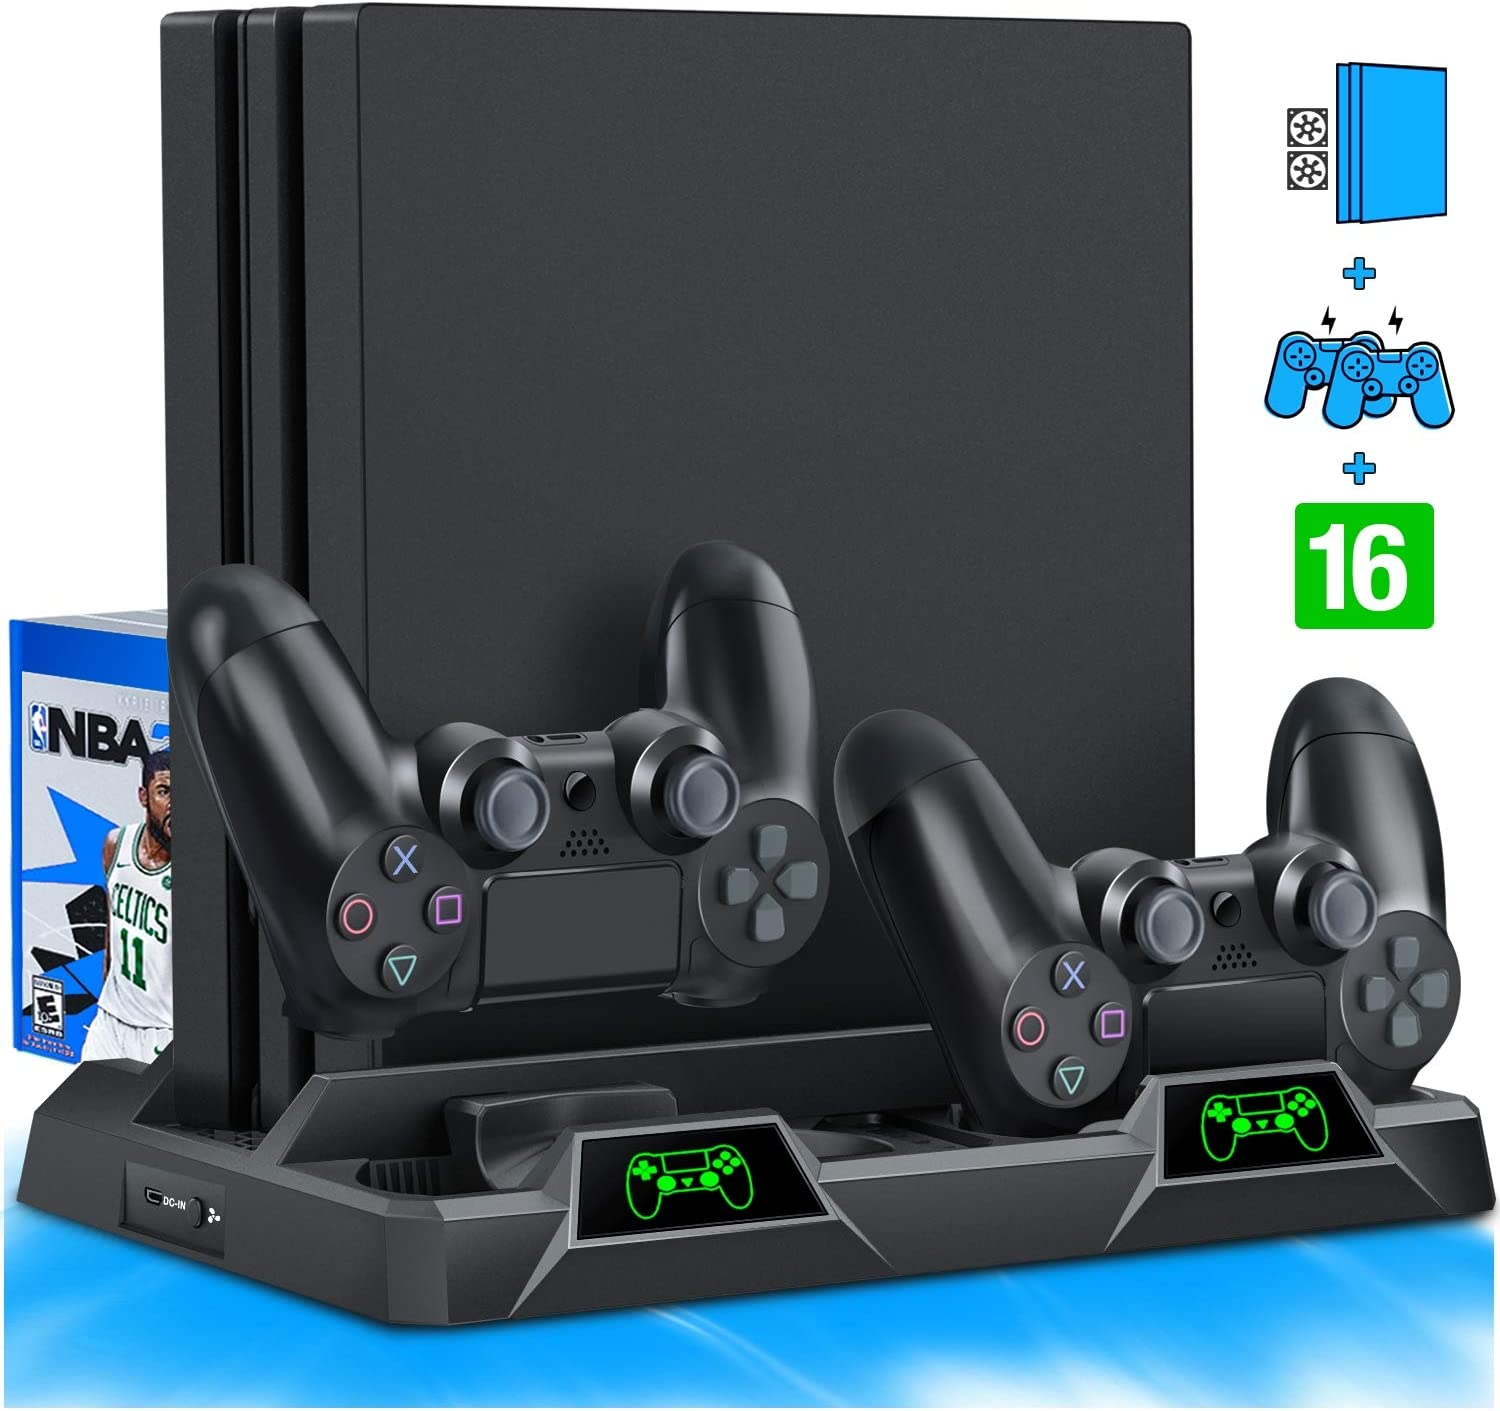 BEBONCOOL PS4 Stand Cooling Fan for PS4 Slim / PS4 Pro/Playstation 4, PS4 Pro Stand Vertical Stand Cooler with Dual Controller Charge Station & 16 Game Storage